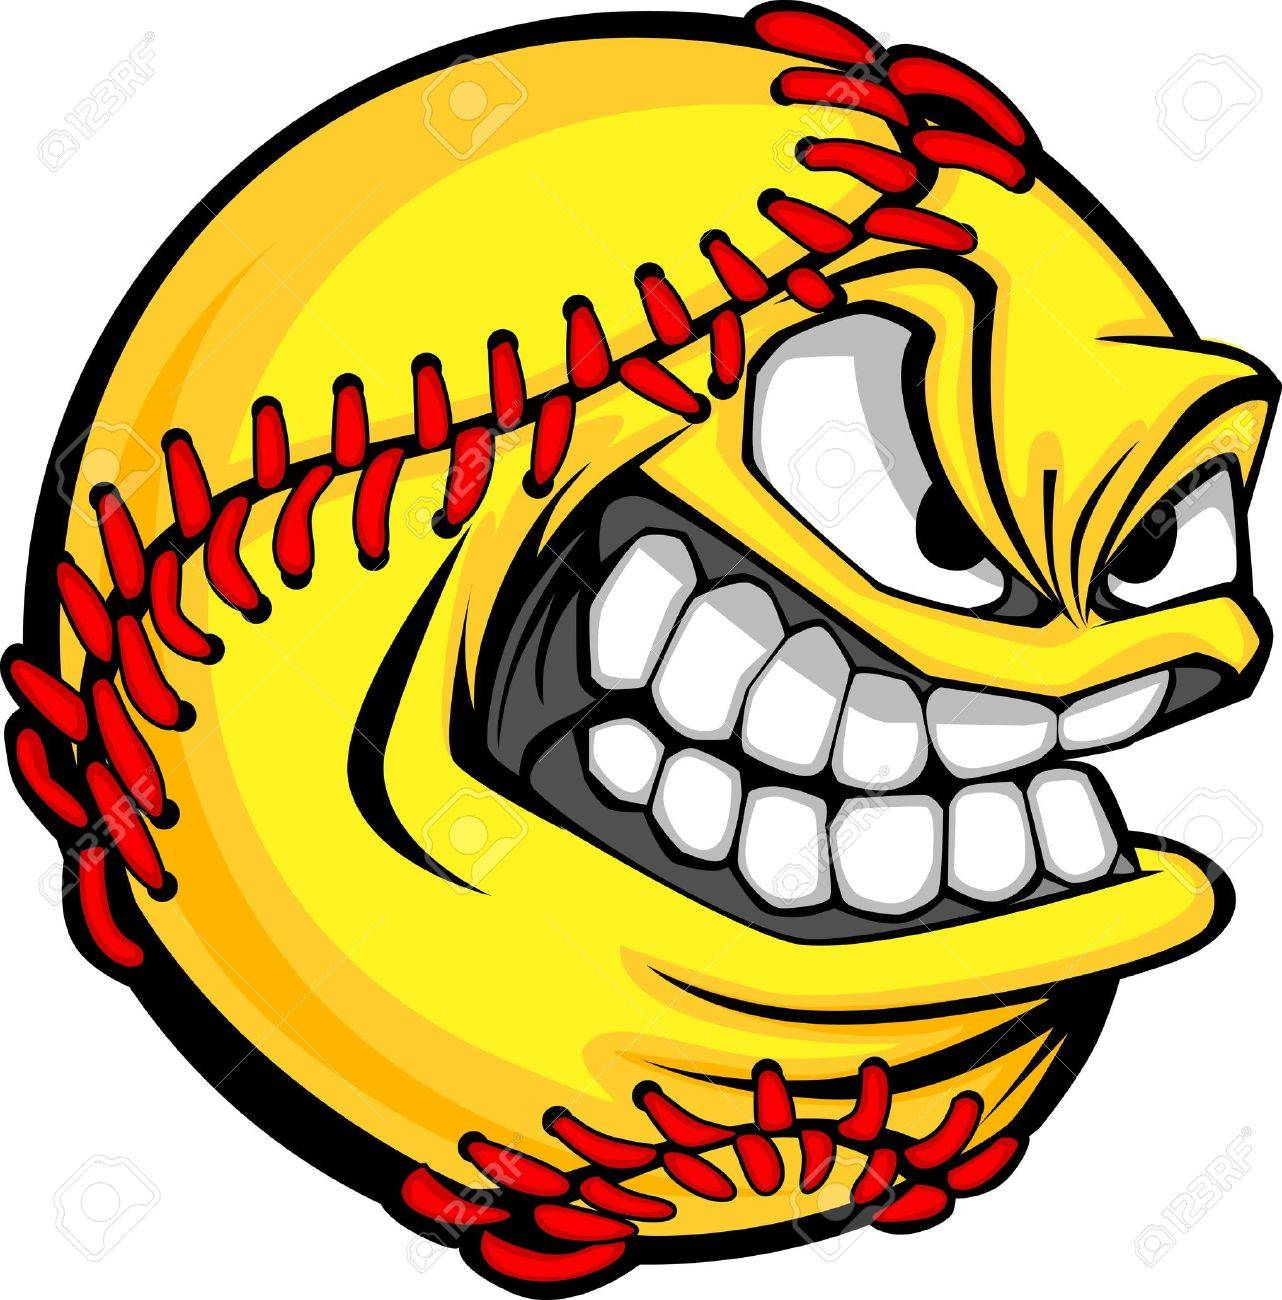 Cartoon Fastpitch Softball with Mean Face Stock Vector - 13092076